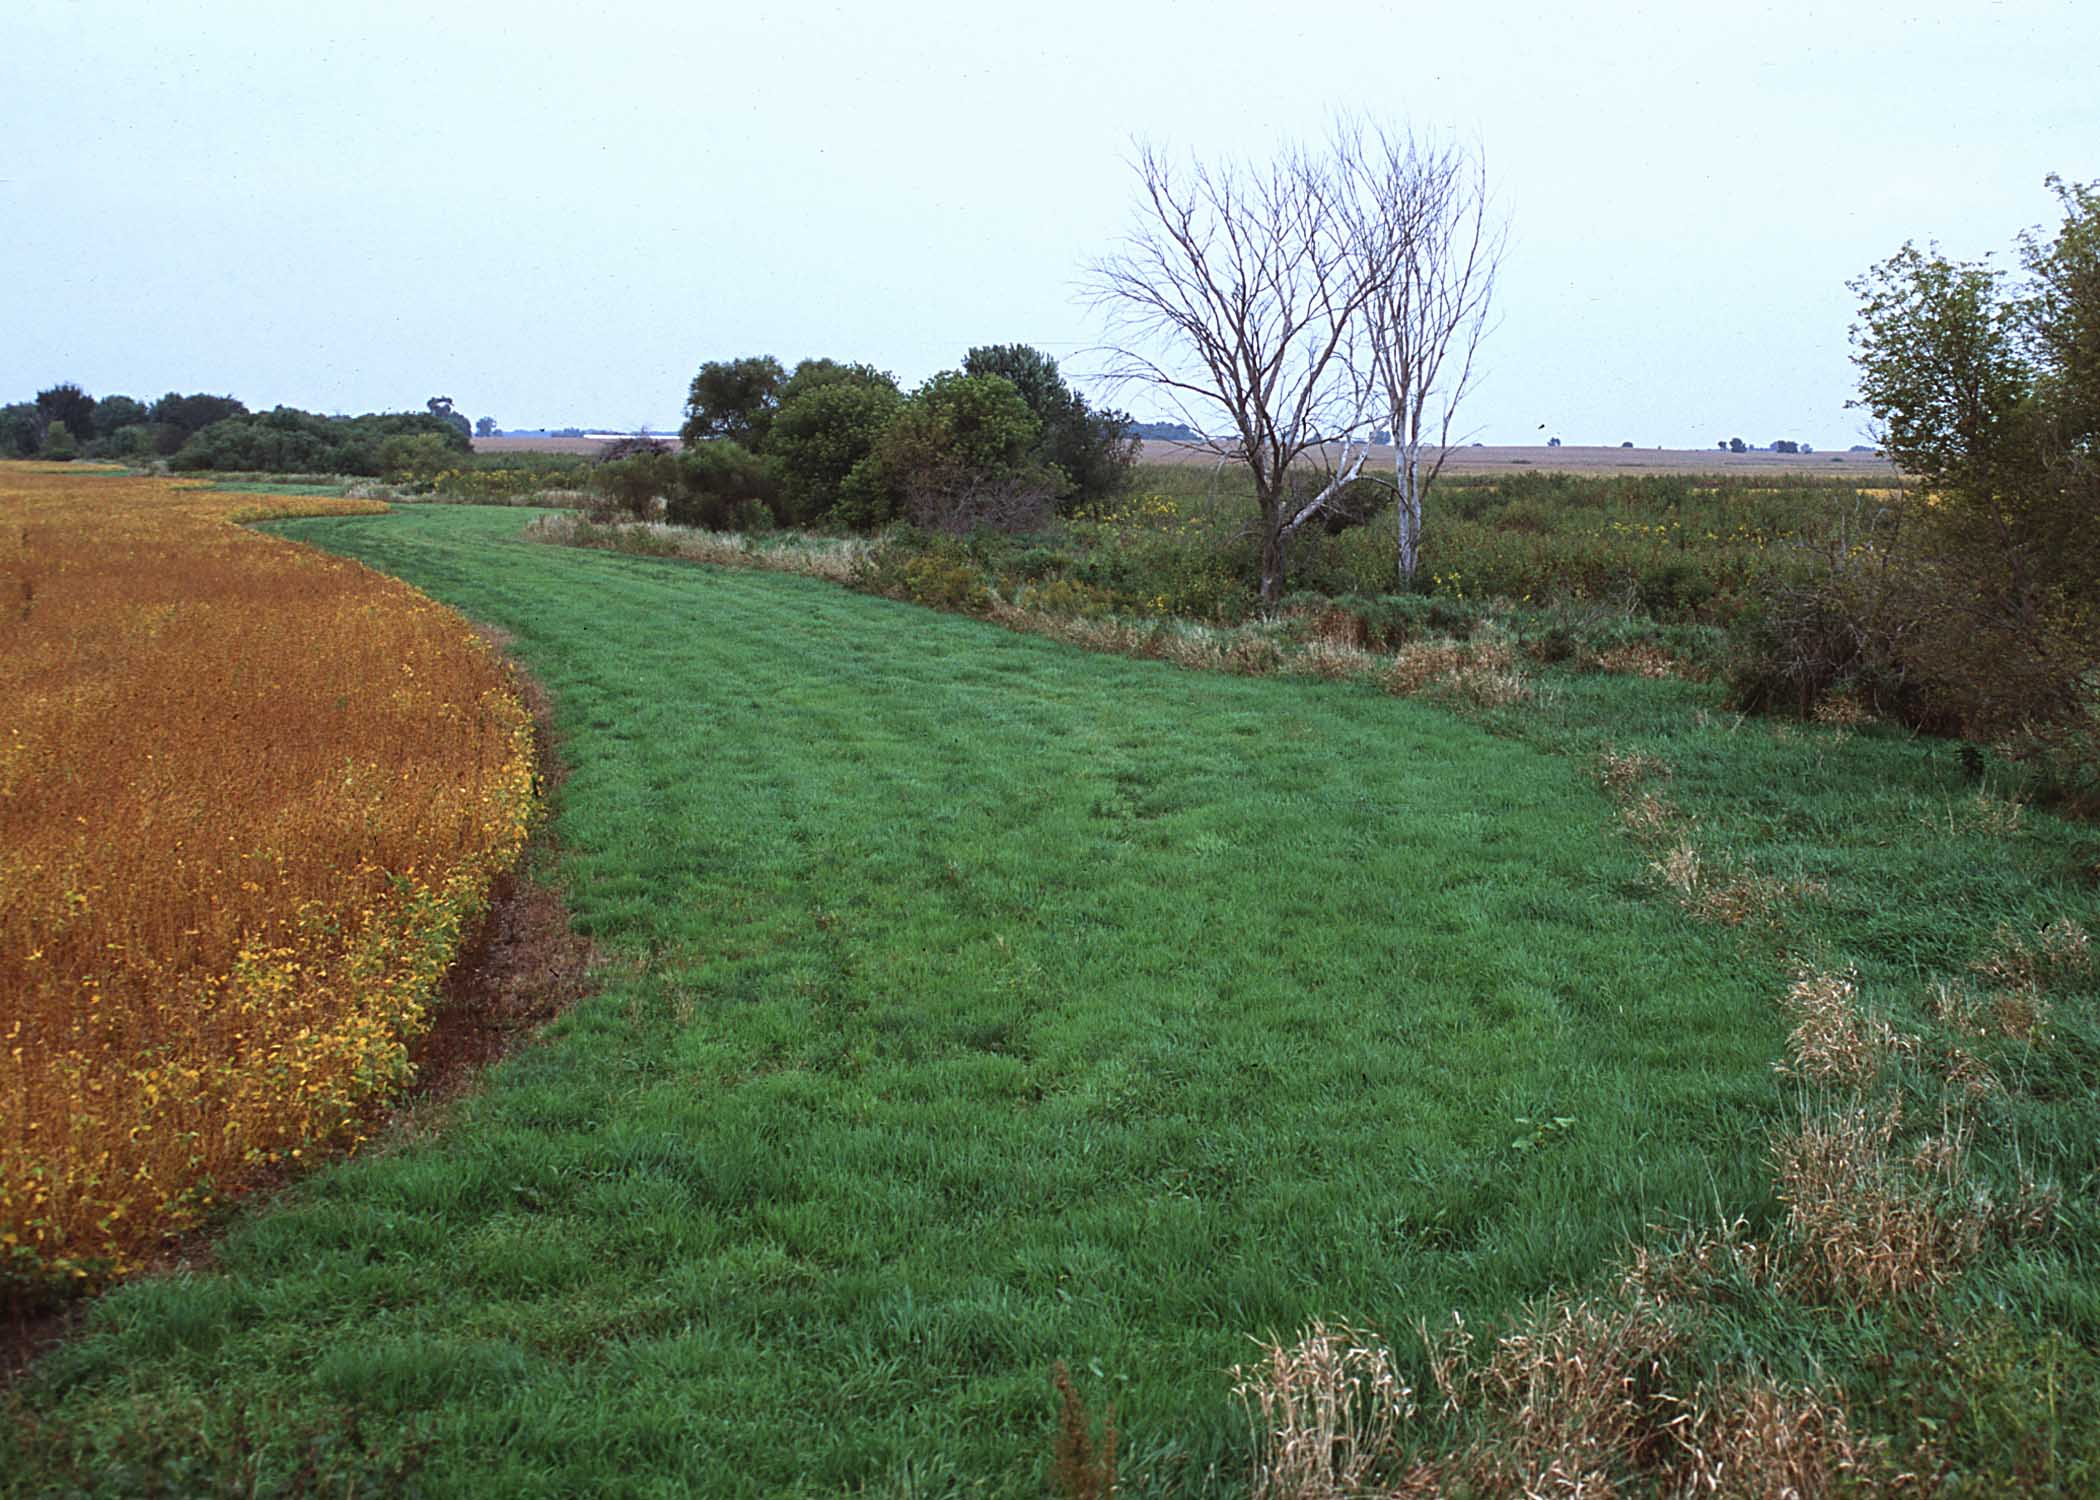 Maximizing Poultry Manure Use Through Nutrient Management